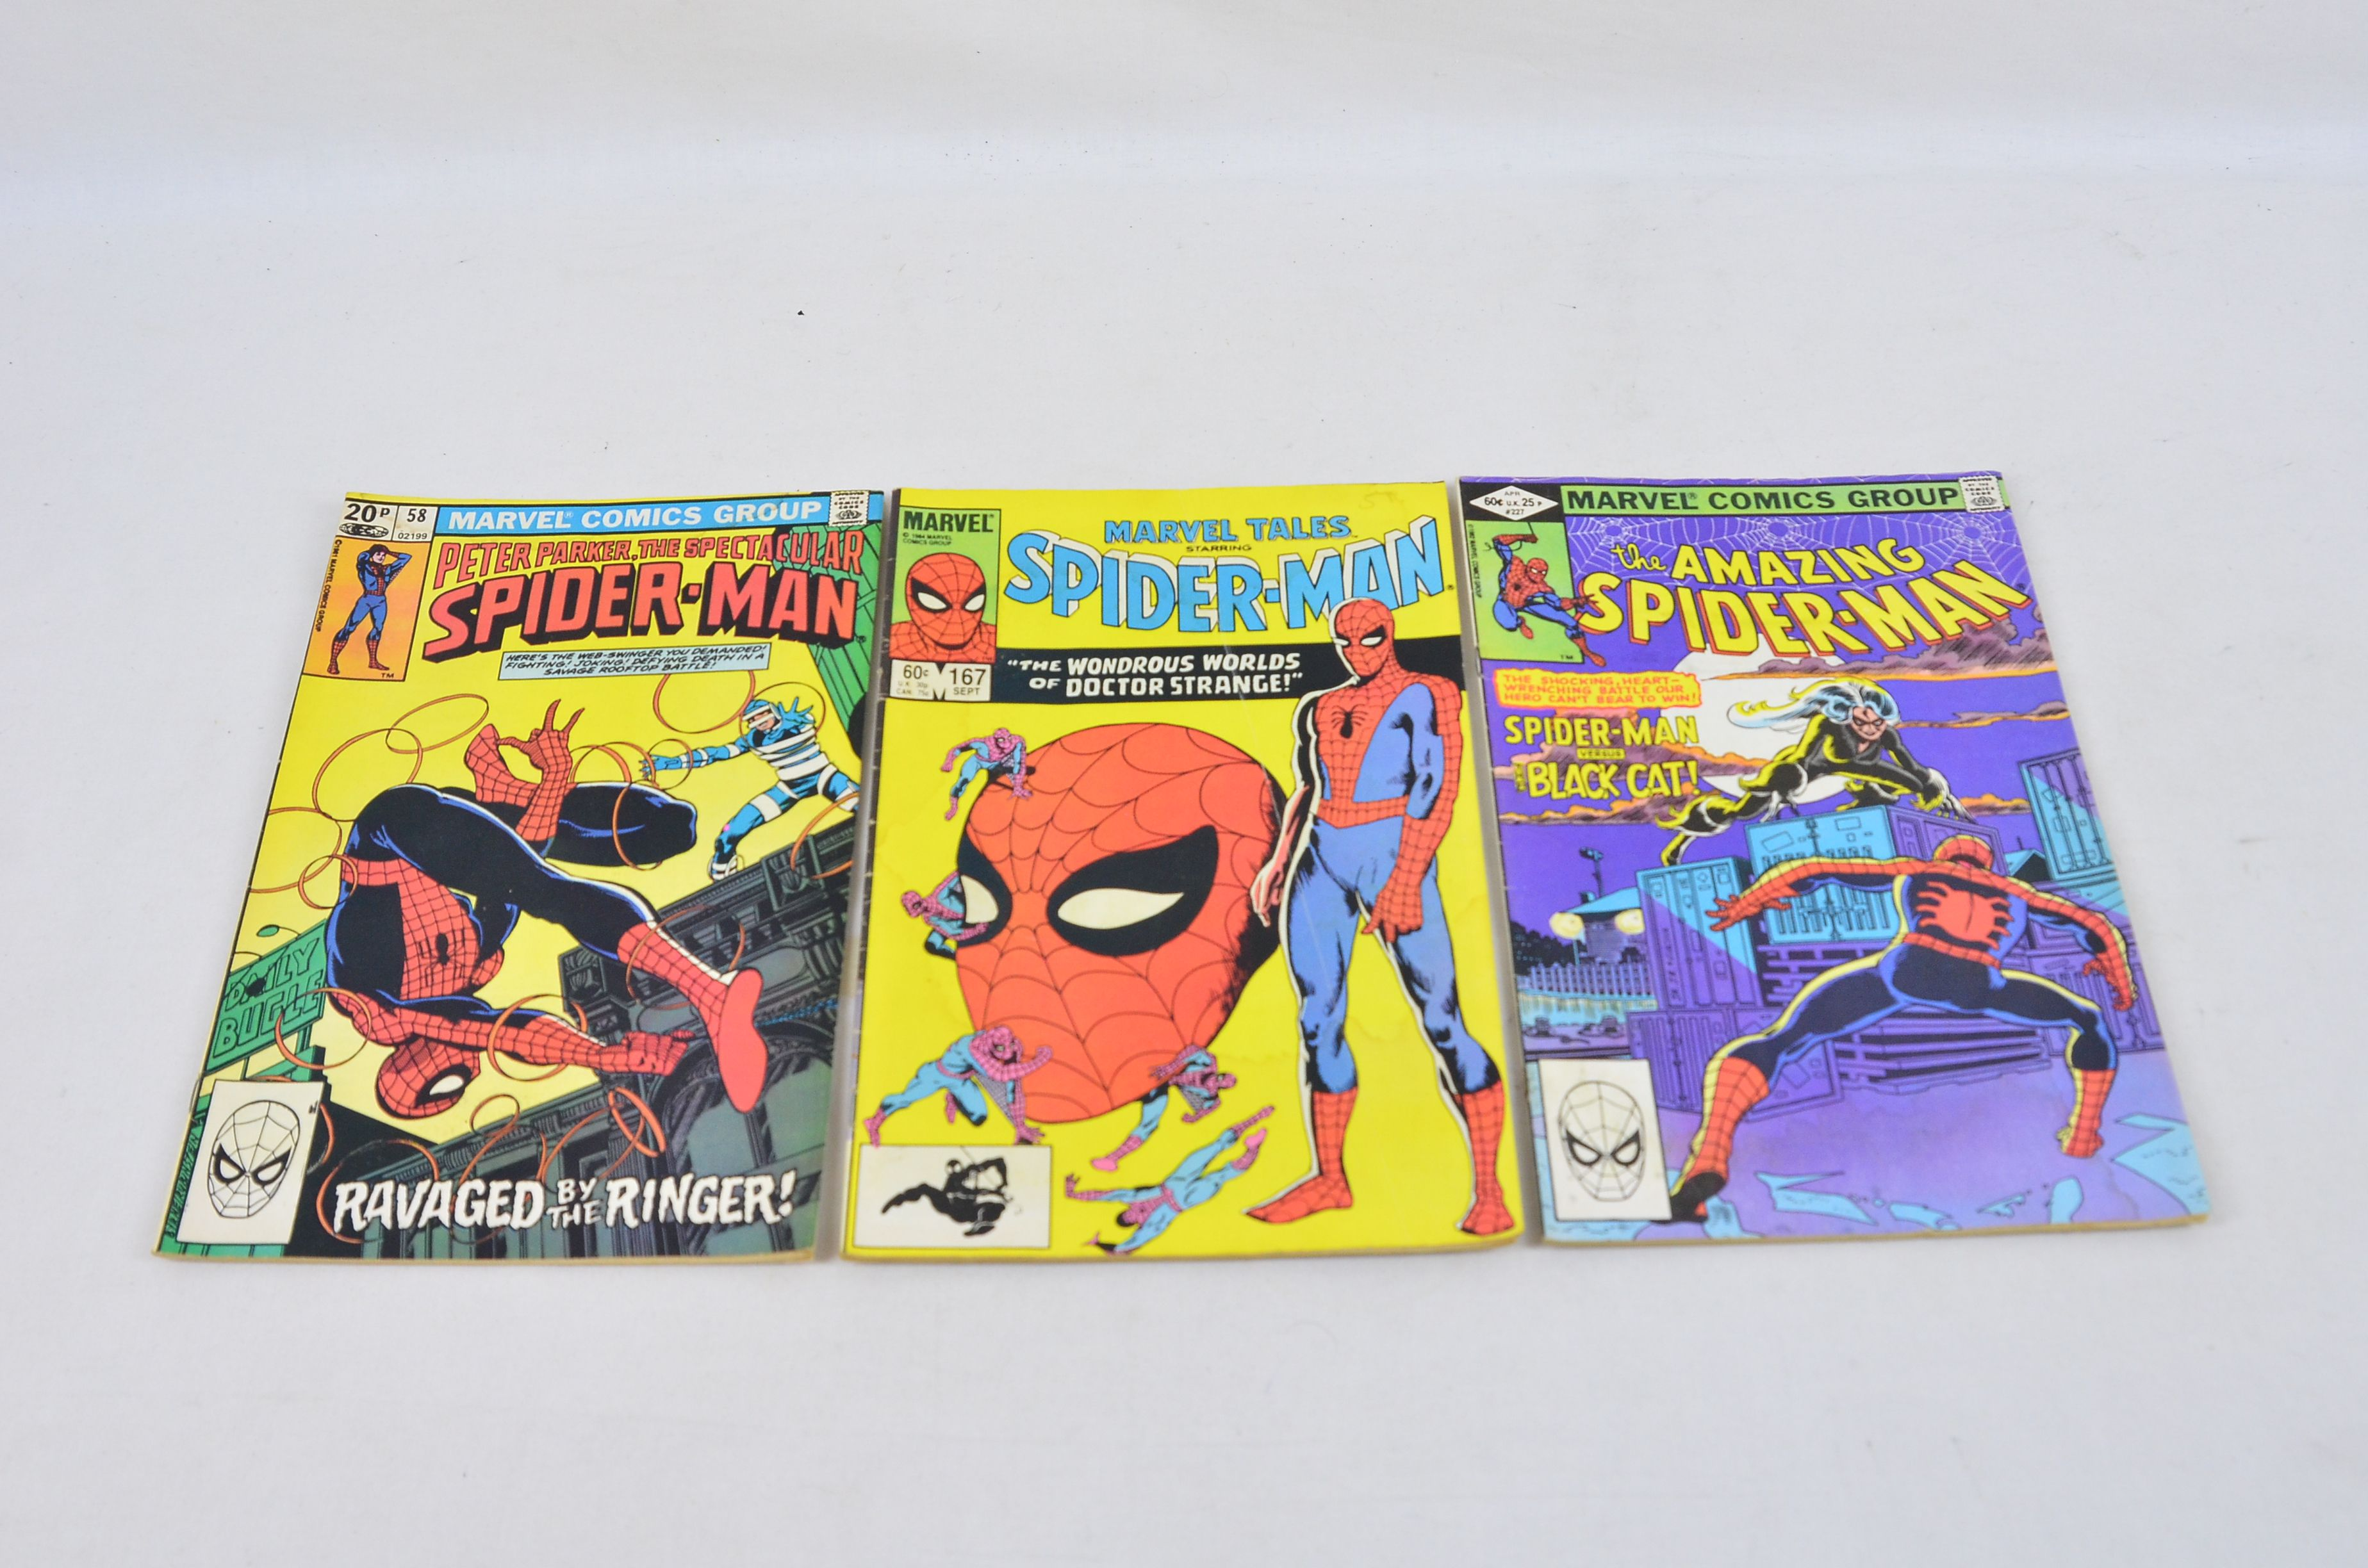 Vintage Marvel Comics Group Peter Parker, The Spectacular Spider-Man Collectable Thumbnail 1